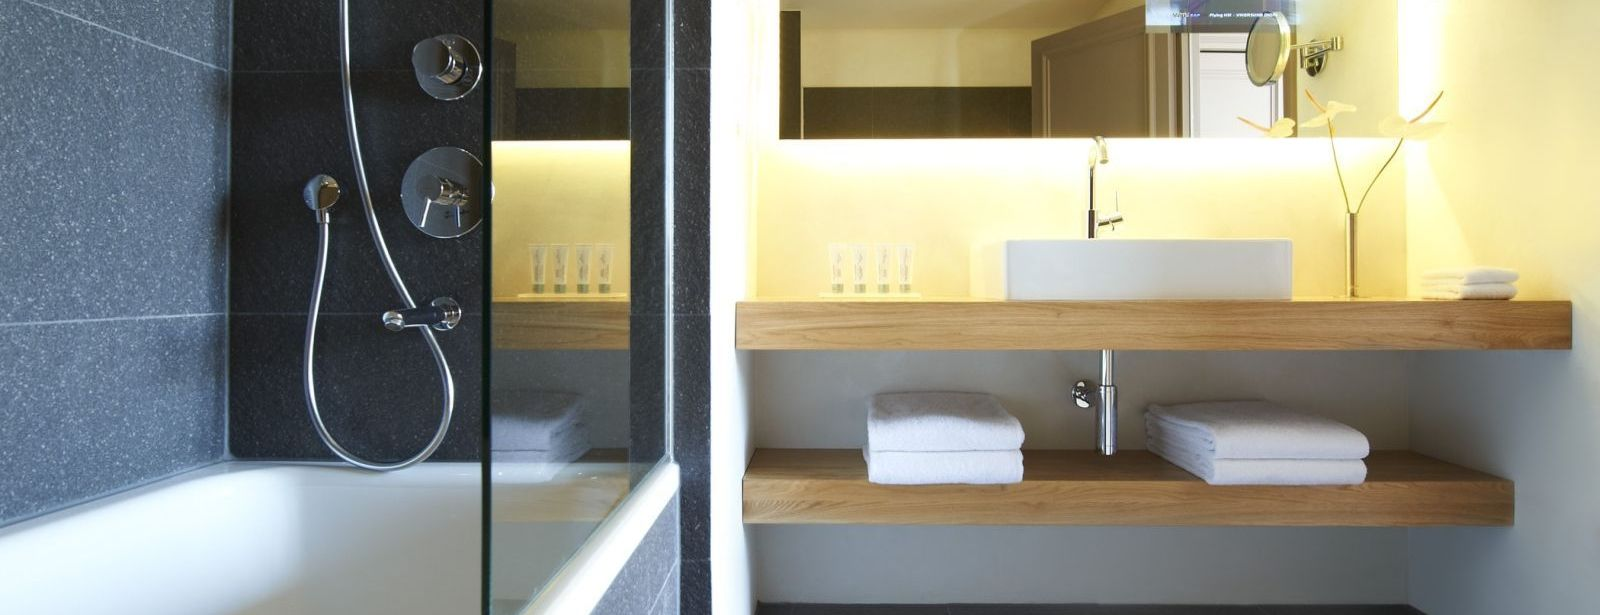 Modern Bathroom Prestige Suite